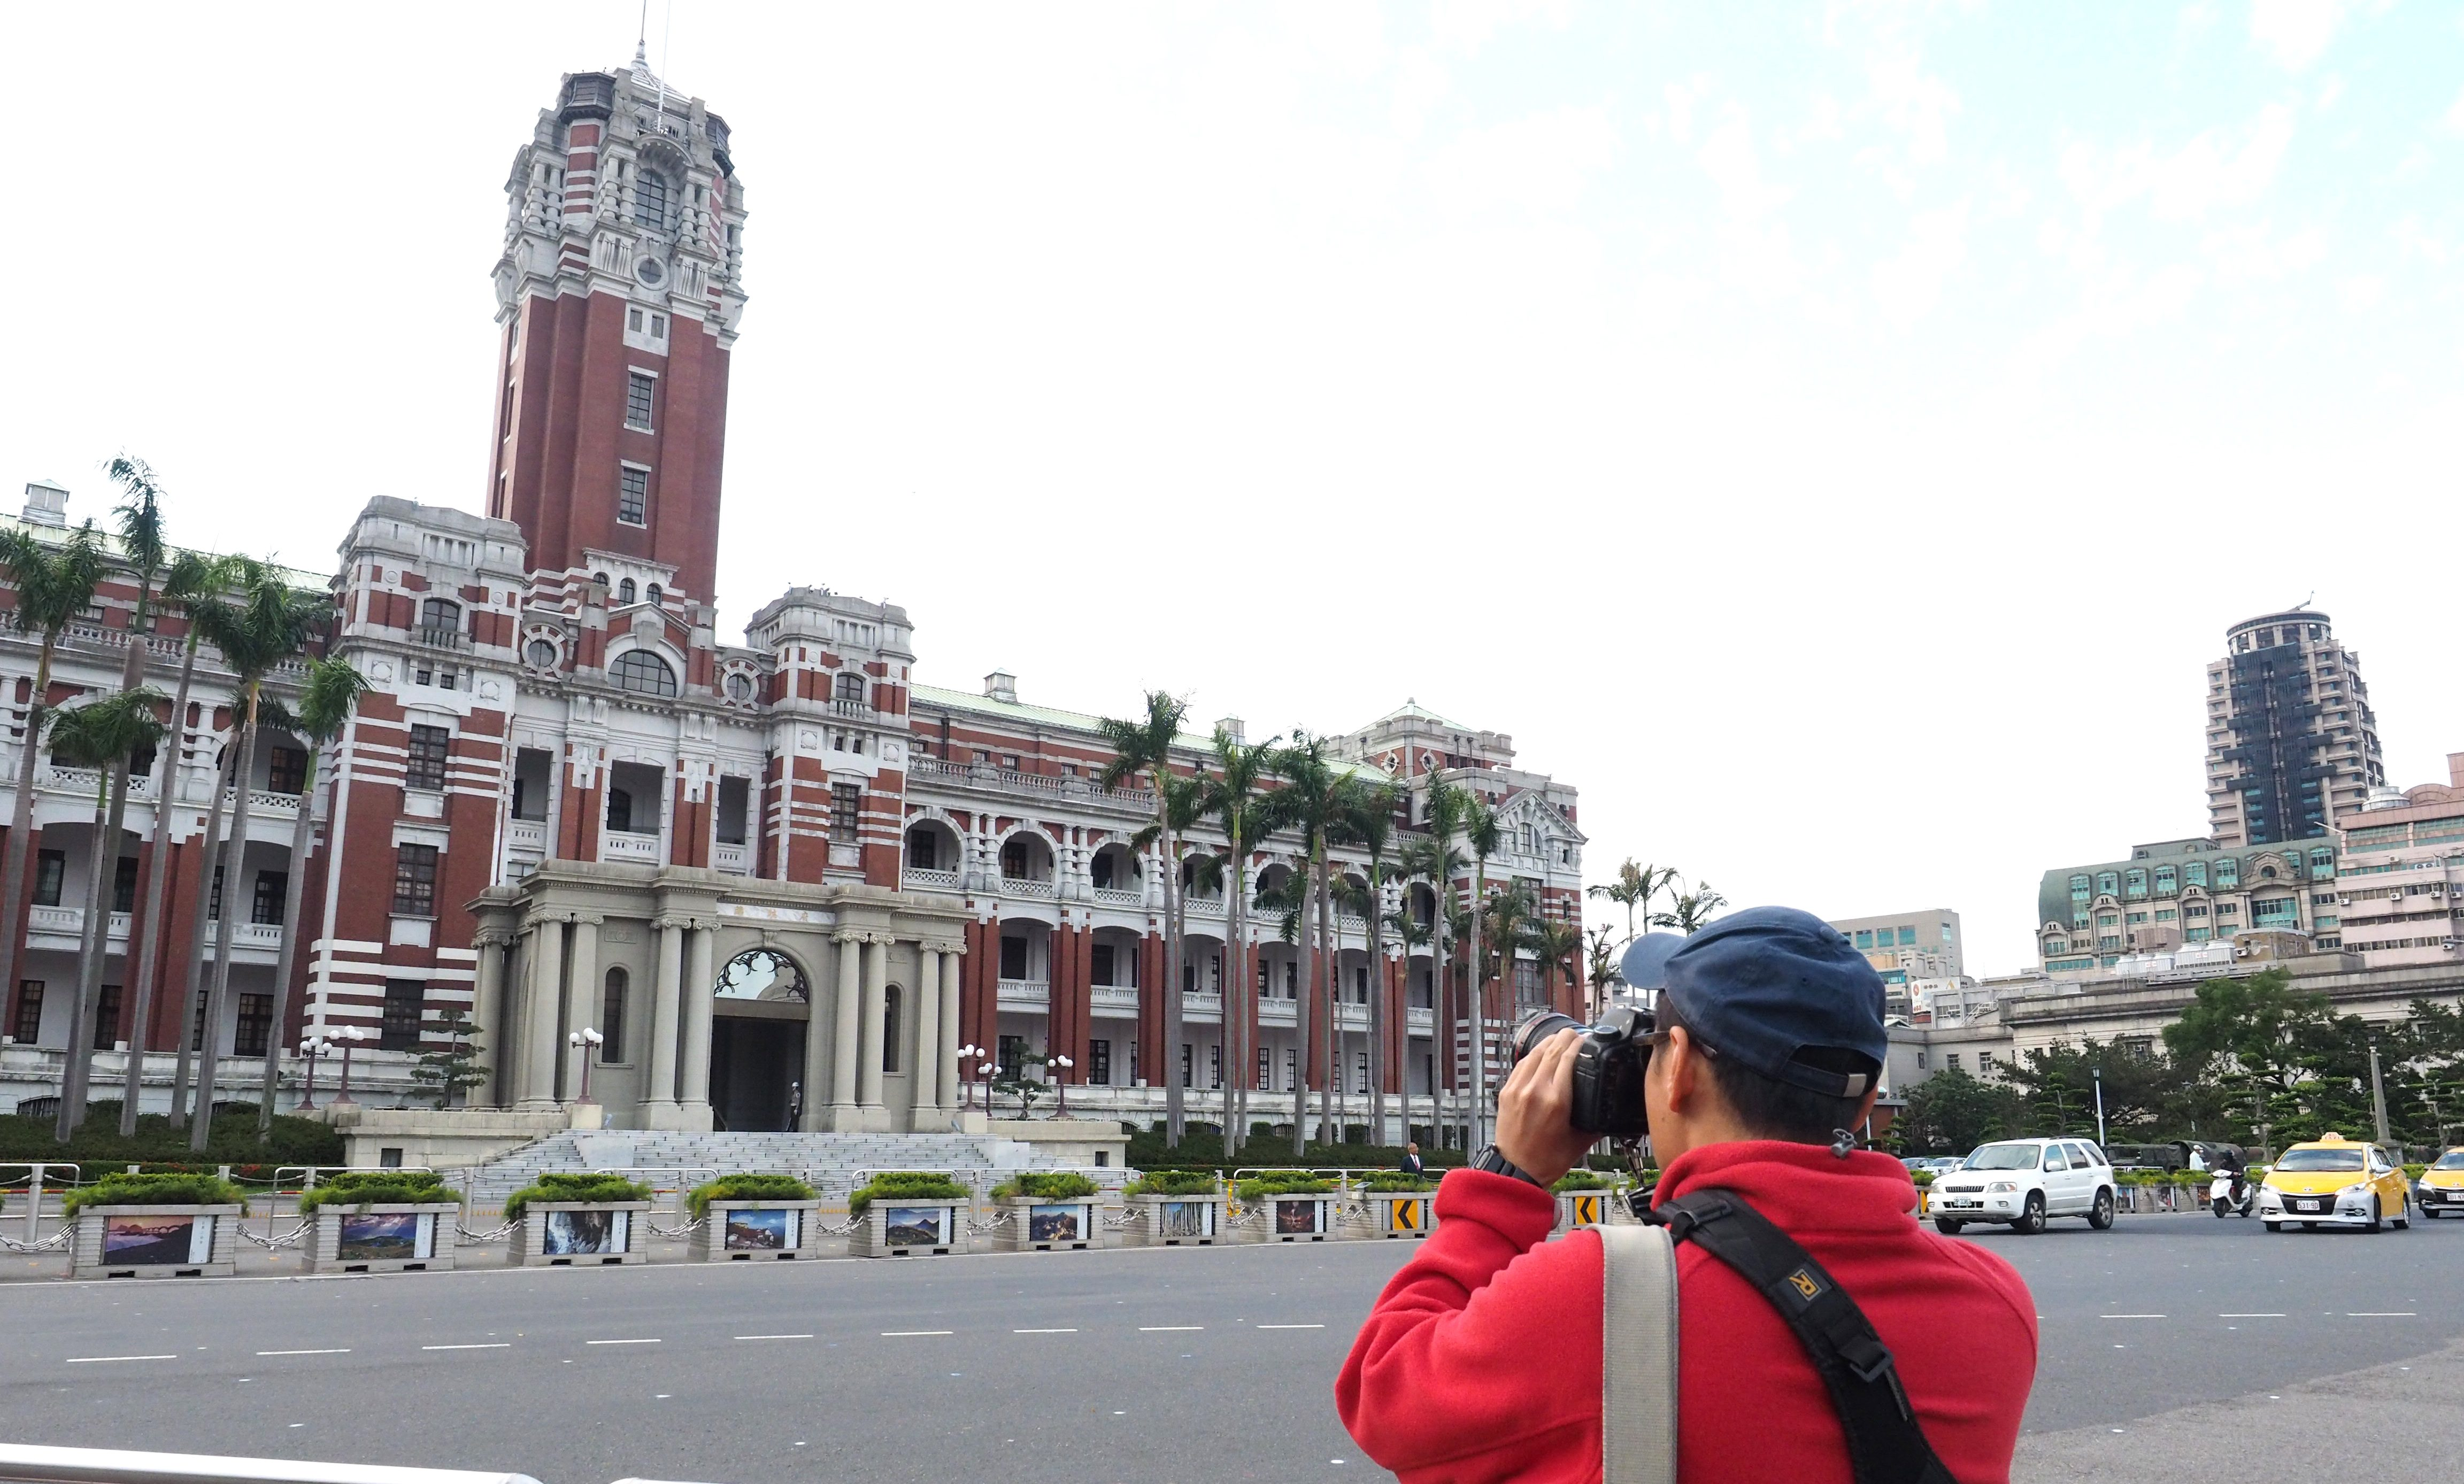 A tourist photographs Taiwan's Presidential Office Building in Tapei, Taiwan, 30 November 2015.